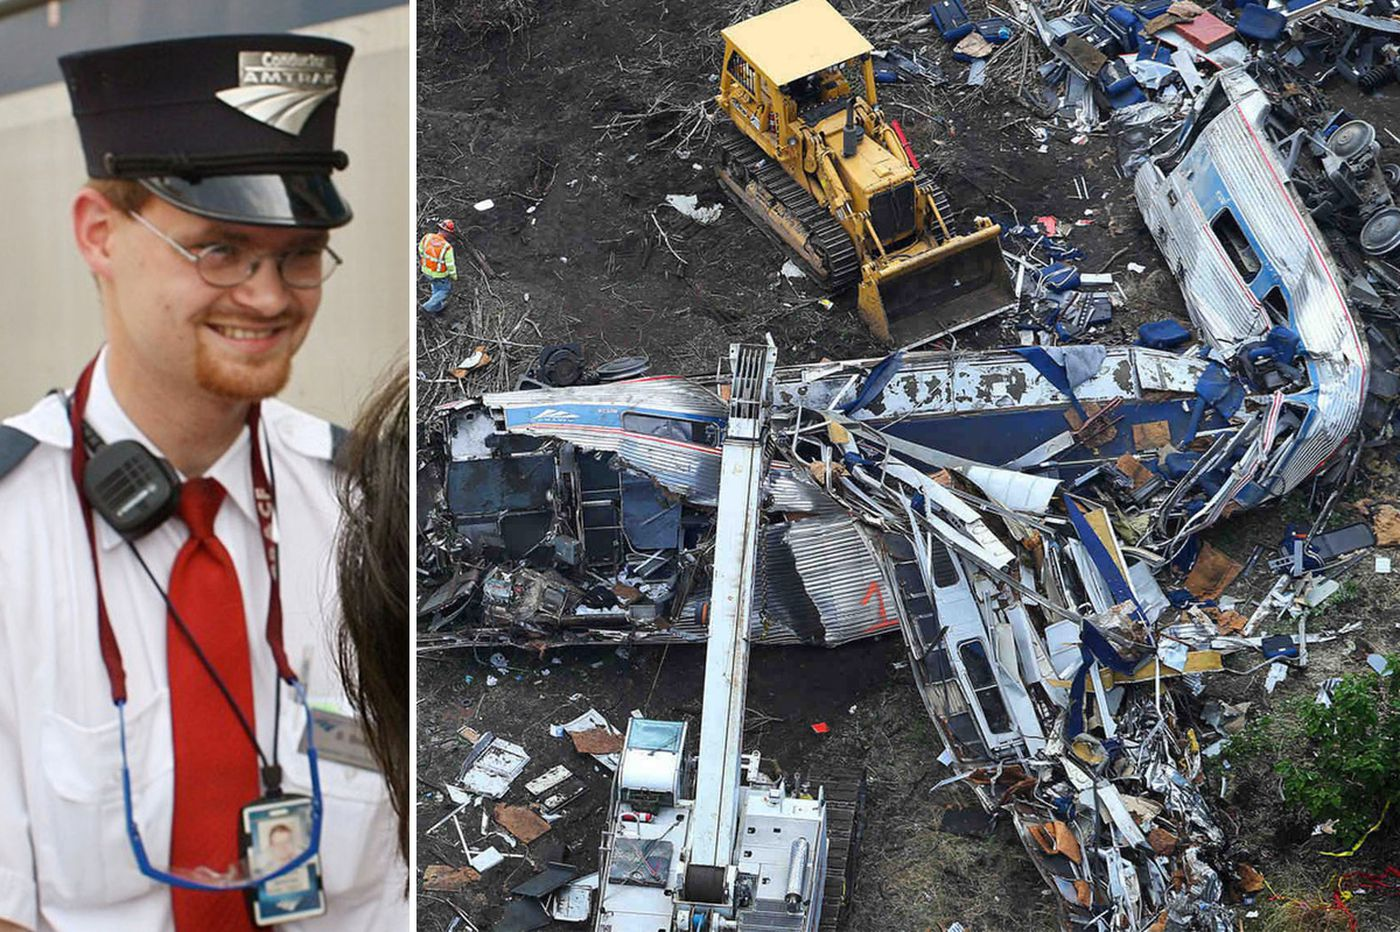 Sources: U.S. to conclude Train 188 likely derailed after engineer distracted